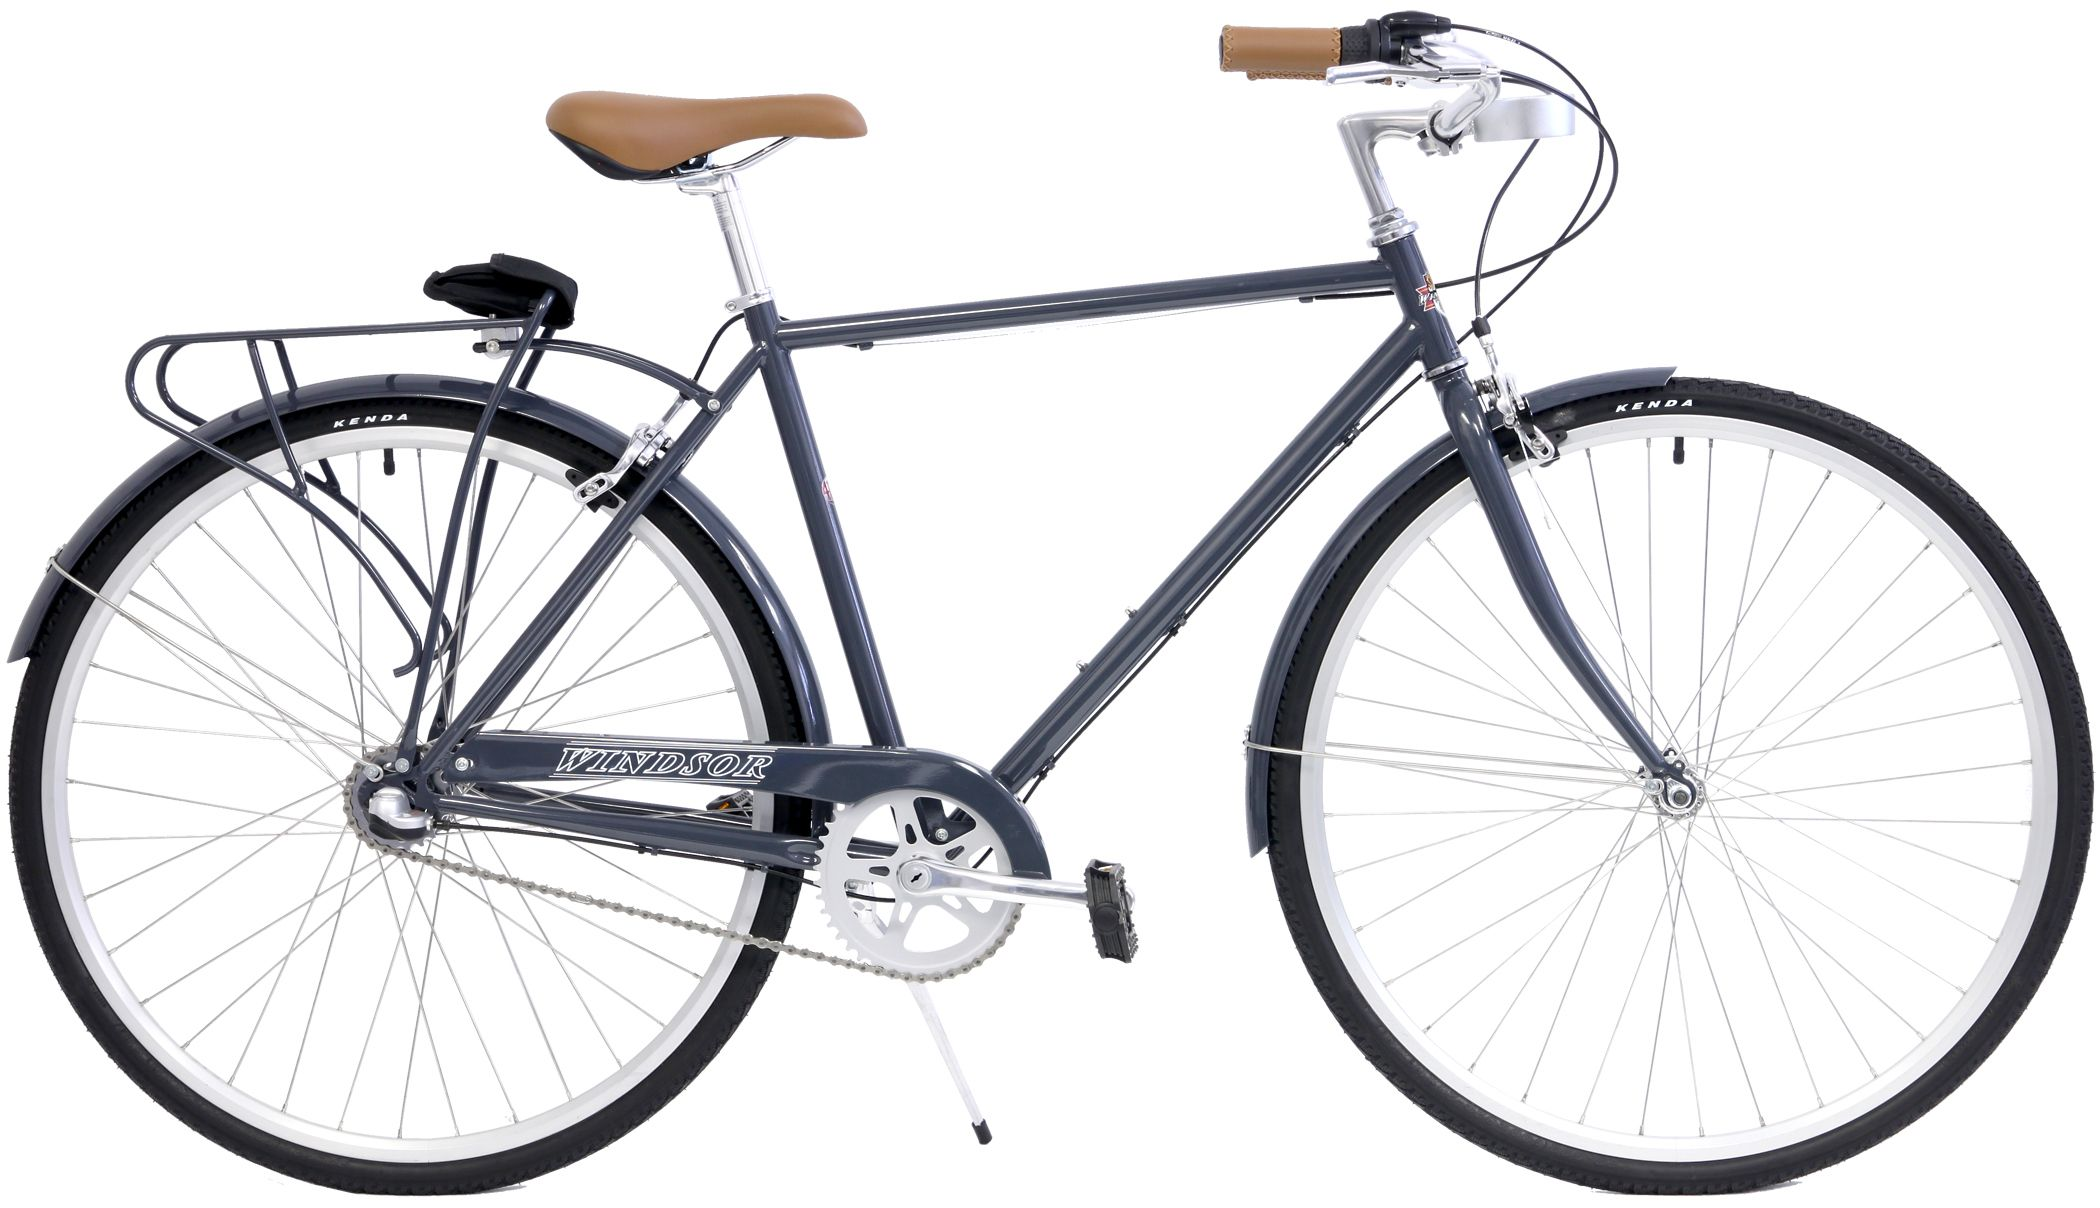 To acquire Urban stylish city bikes picture trends